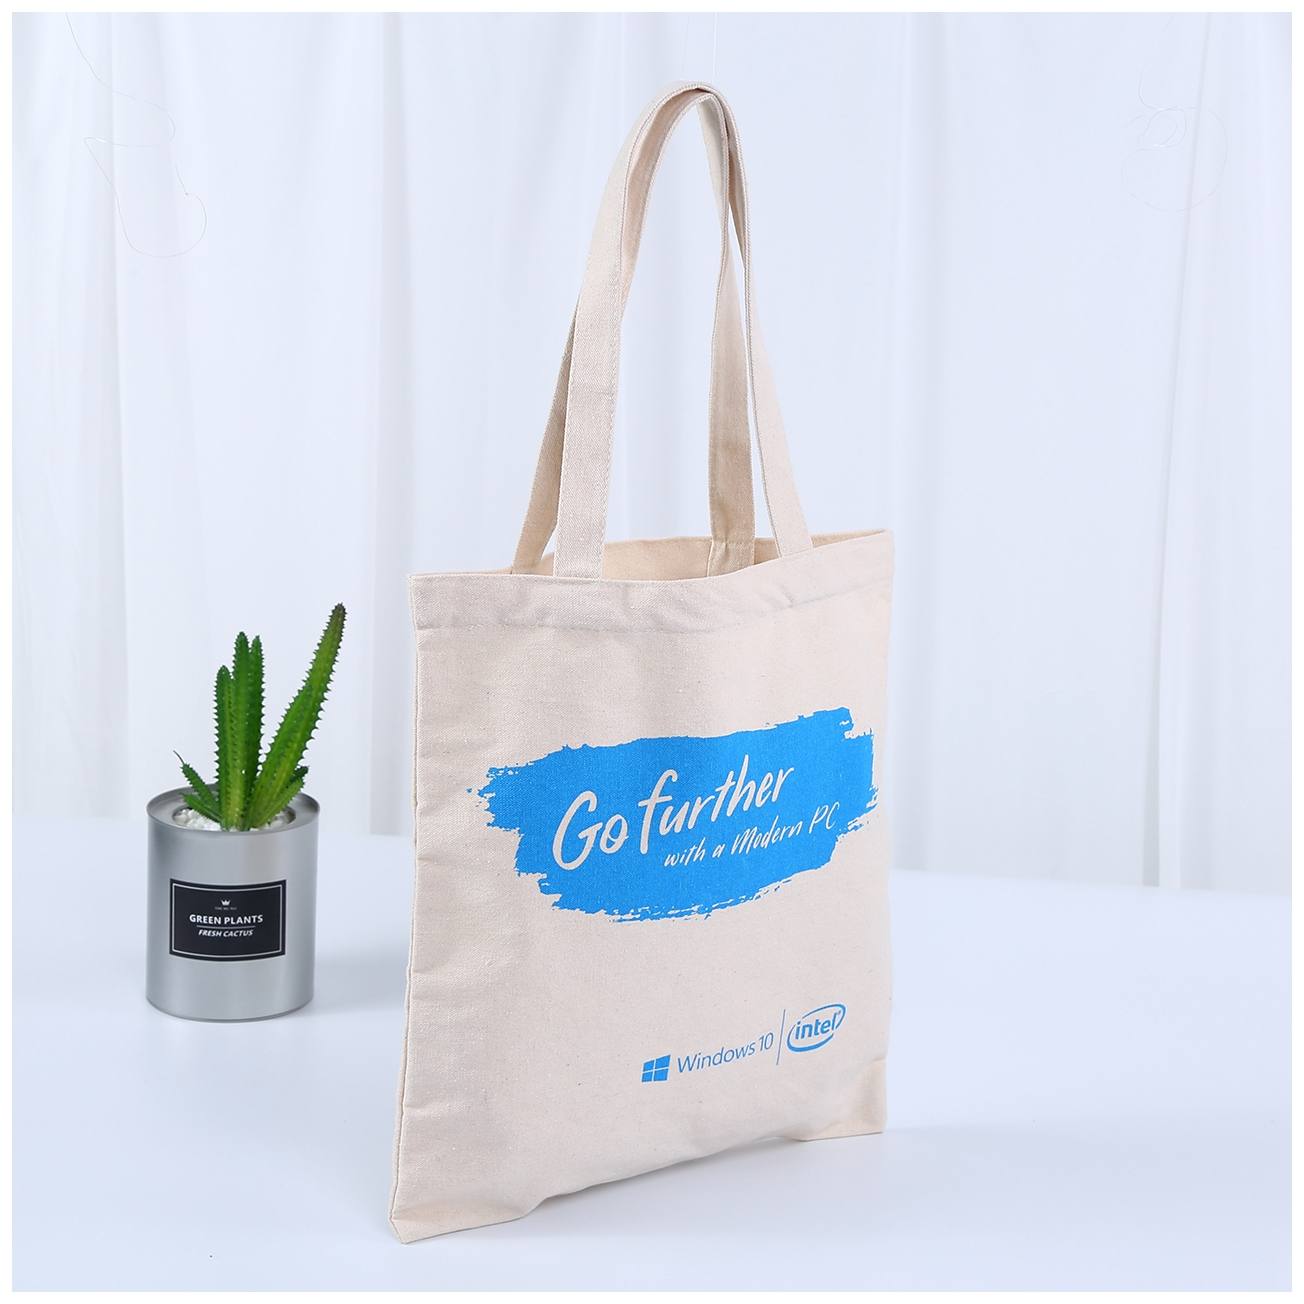 Intel Go Further Canvas bag